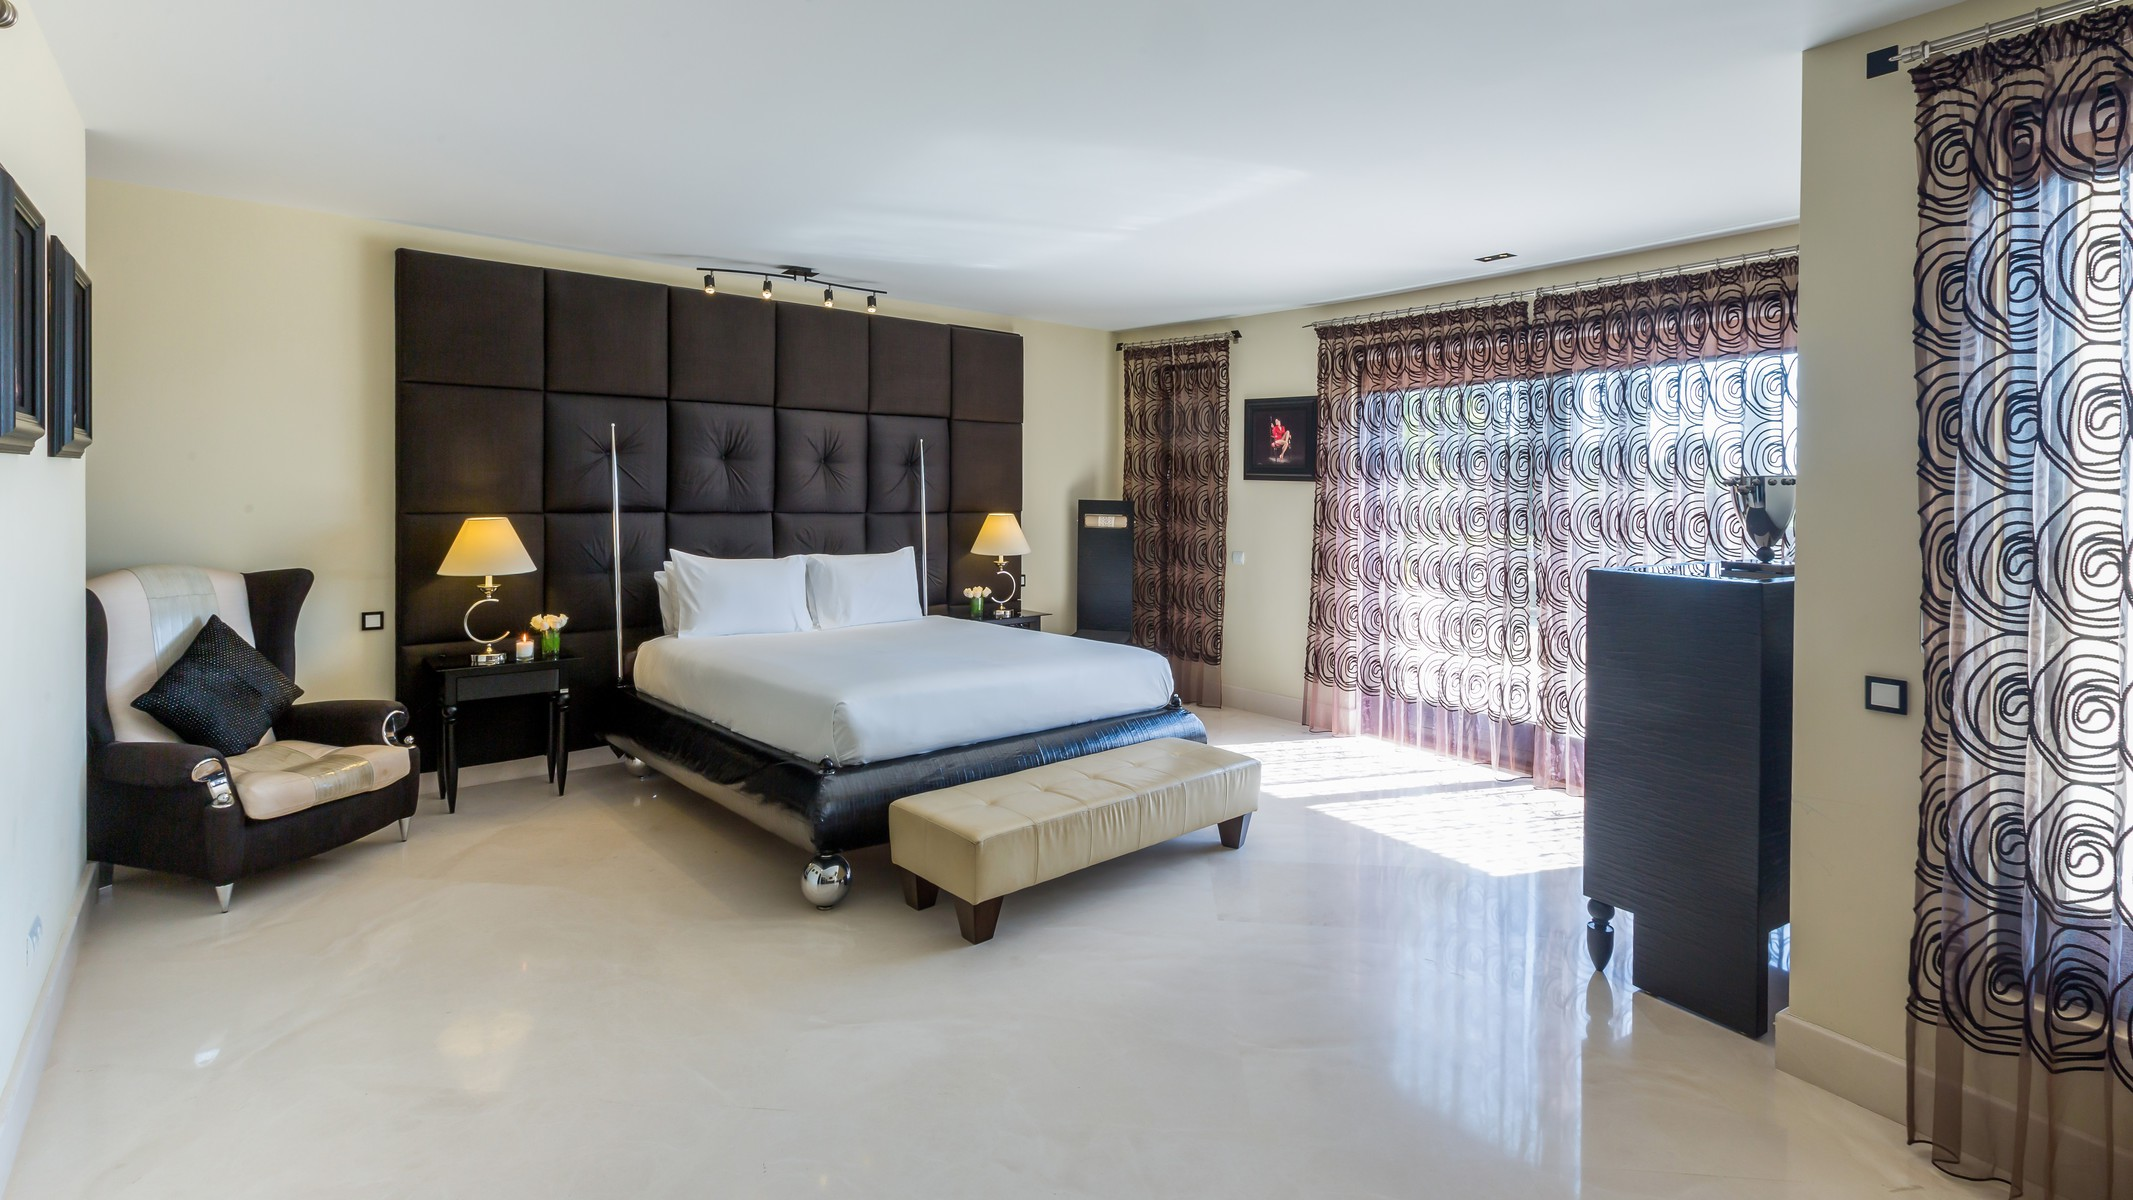 18-villa-el-cano-master-bedroom-ground-floor